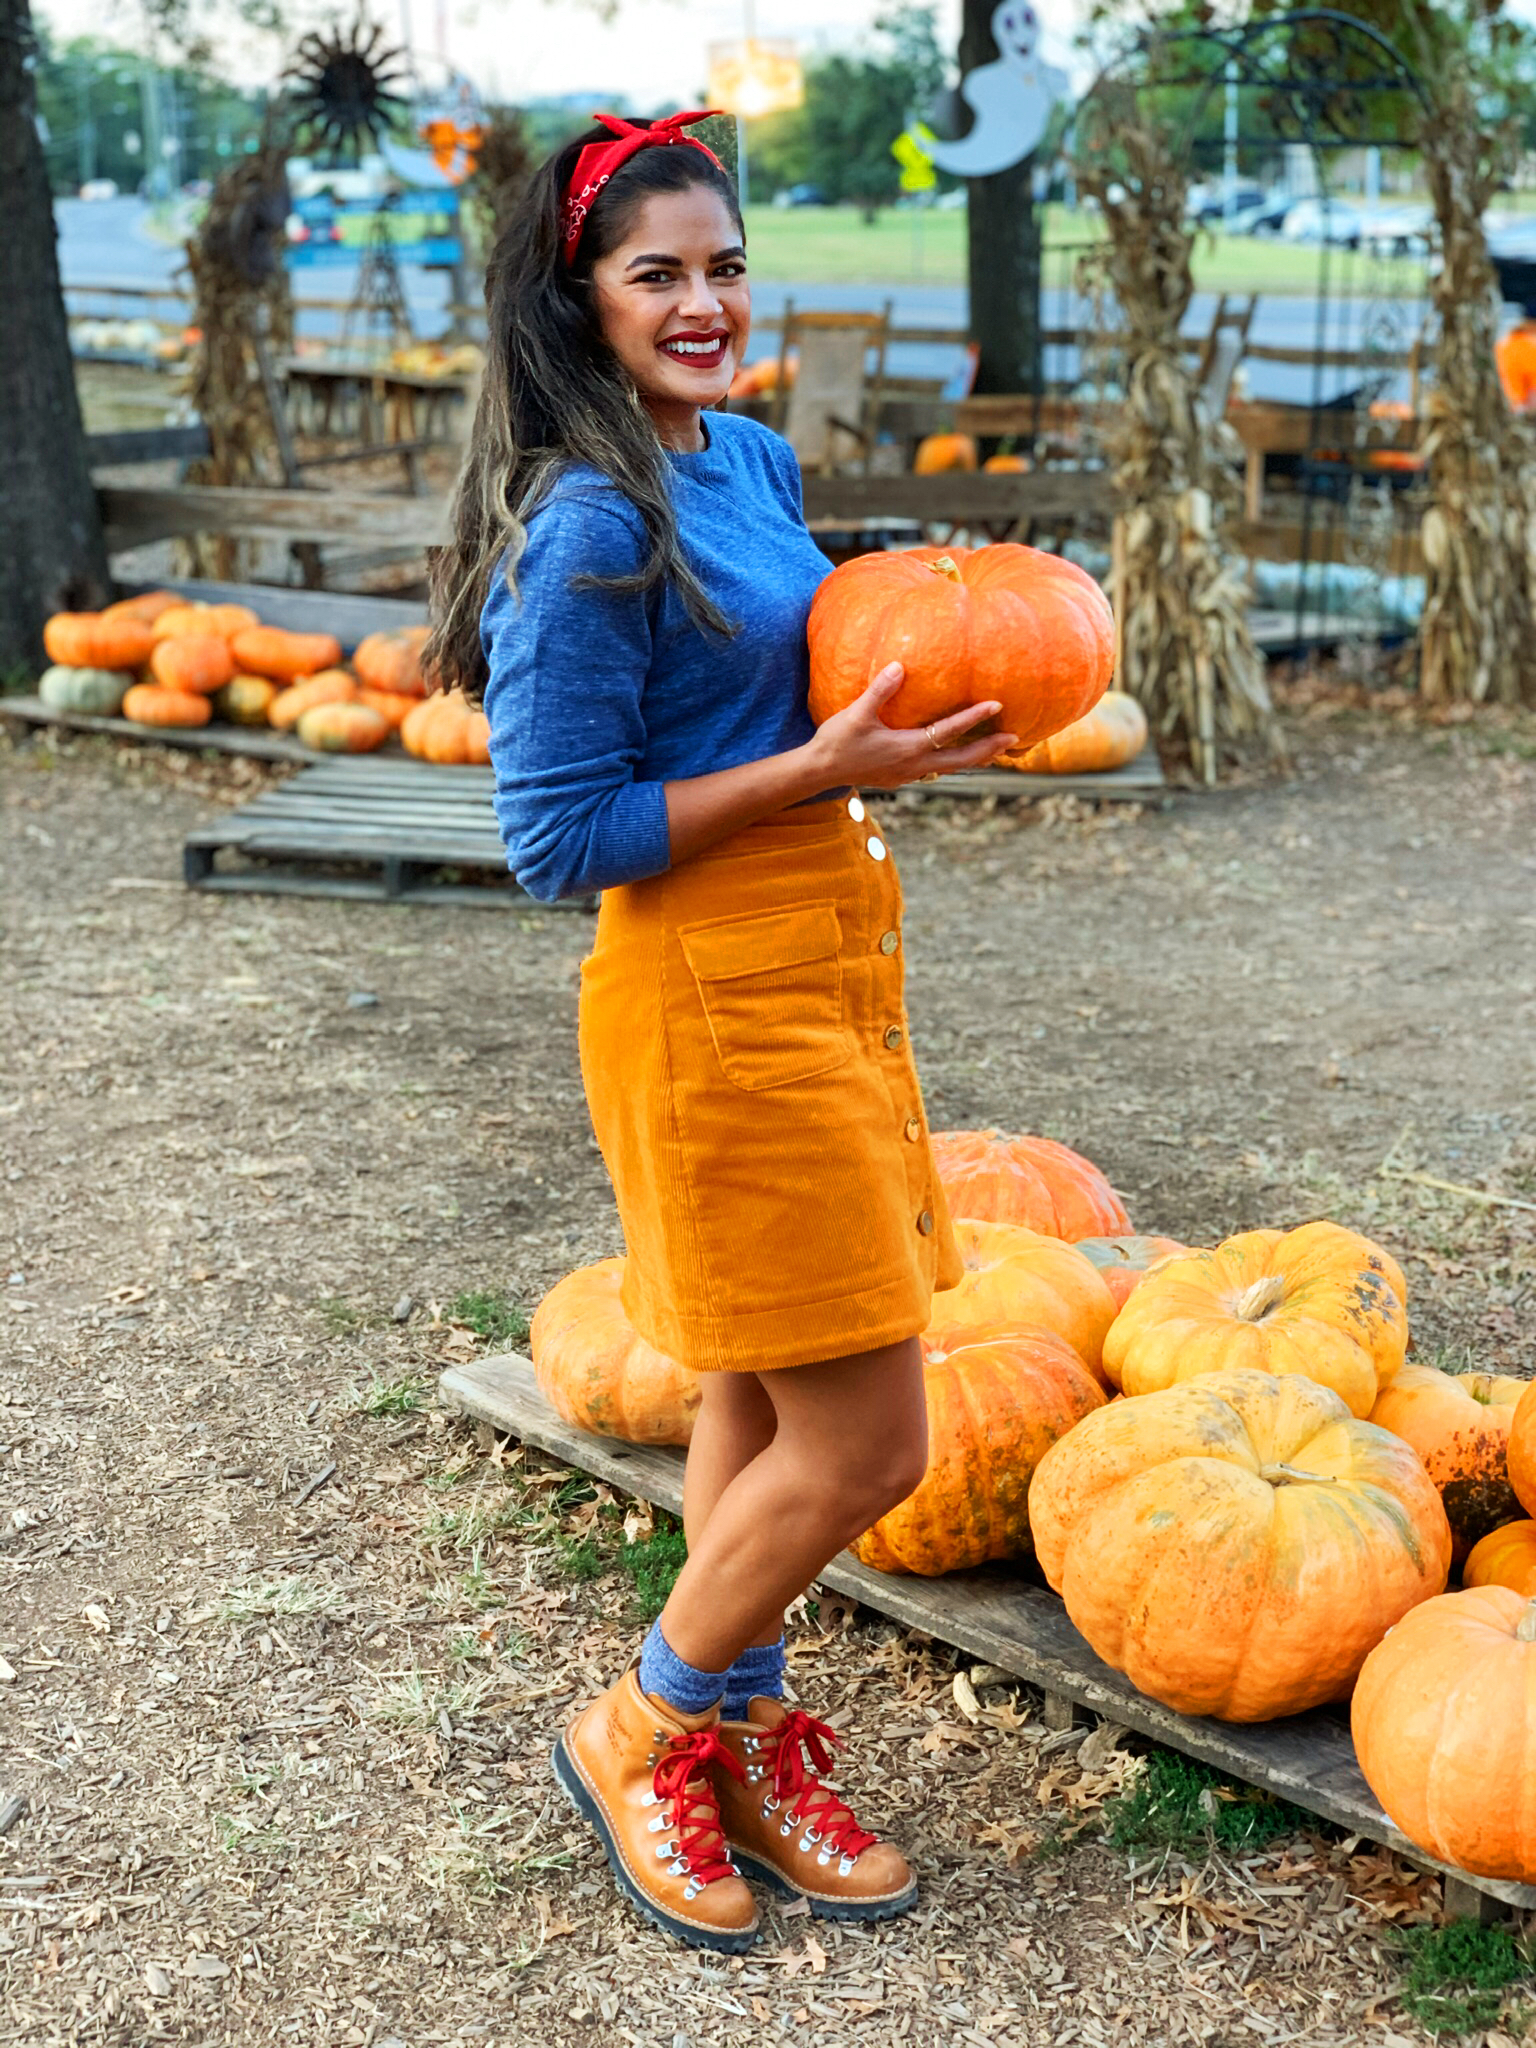 Priya the Blog, Nashville fashion blog, Nashville style blog, Nashville fashion blogger, Nashville style blogger, Fall outfit, Fall outfit idea, what to wear to a pumpkin patch, pumpkin patch outfit, Danner boots, corduroy skirt, how to style Danner boots, Autumn outfit idea, Fall outfit idea,